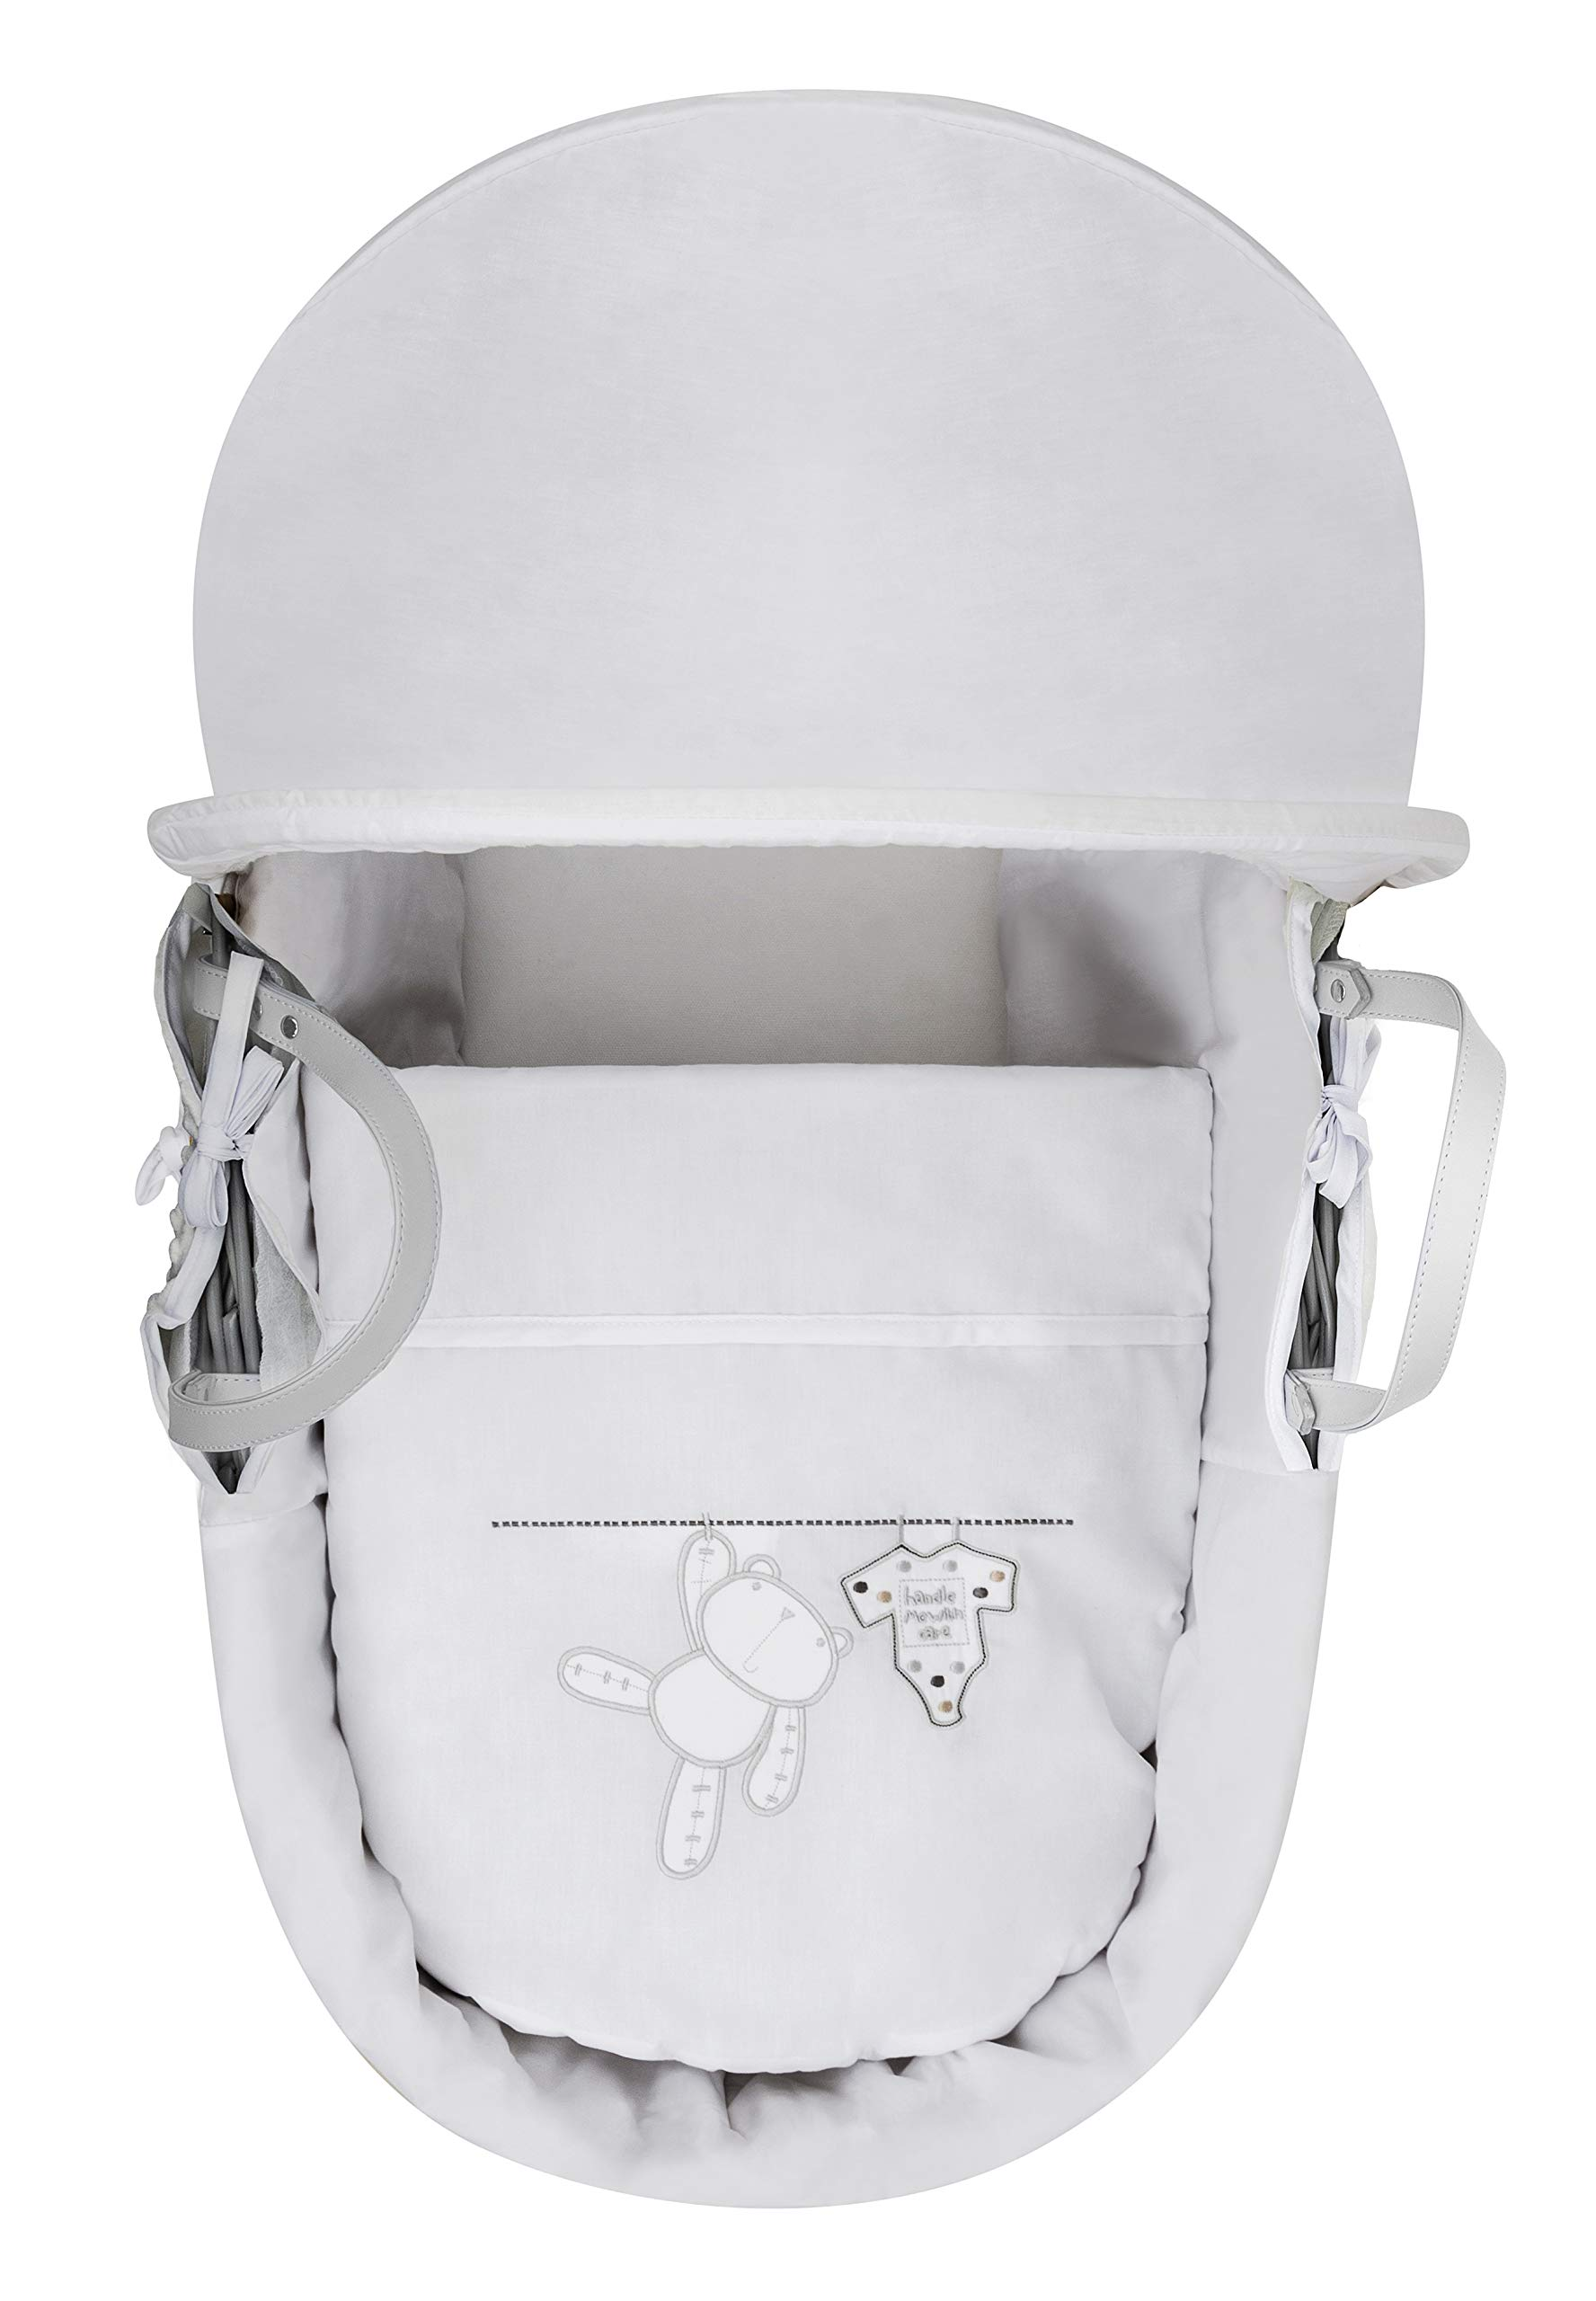 White Teddy Wash Day Moses Basket, Deluxe Rocking Stand and Honeycomb Blanket Bundle Deal Elegant Baby Stylish Elegant Baby Exclusive moses basket Opulent cotton blend fabric with a luxurious soft padded surround Baby Essentials Bundle containing hooded towel, fleece blanket and cellular blanket 3